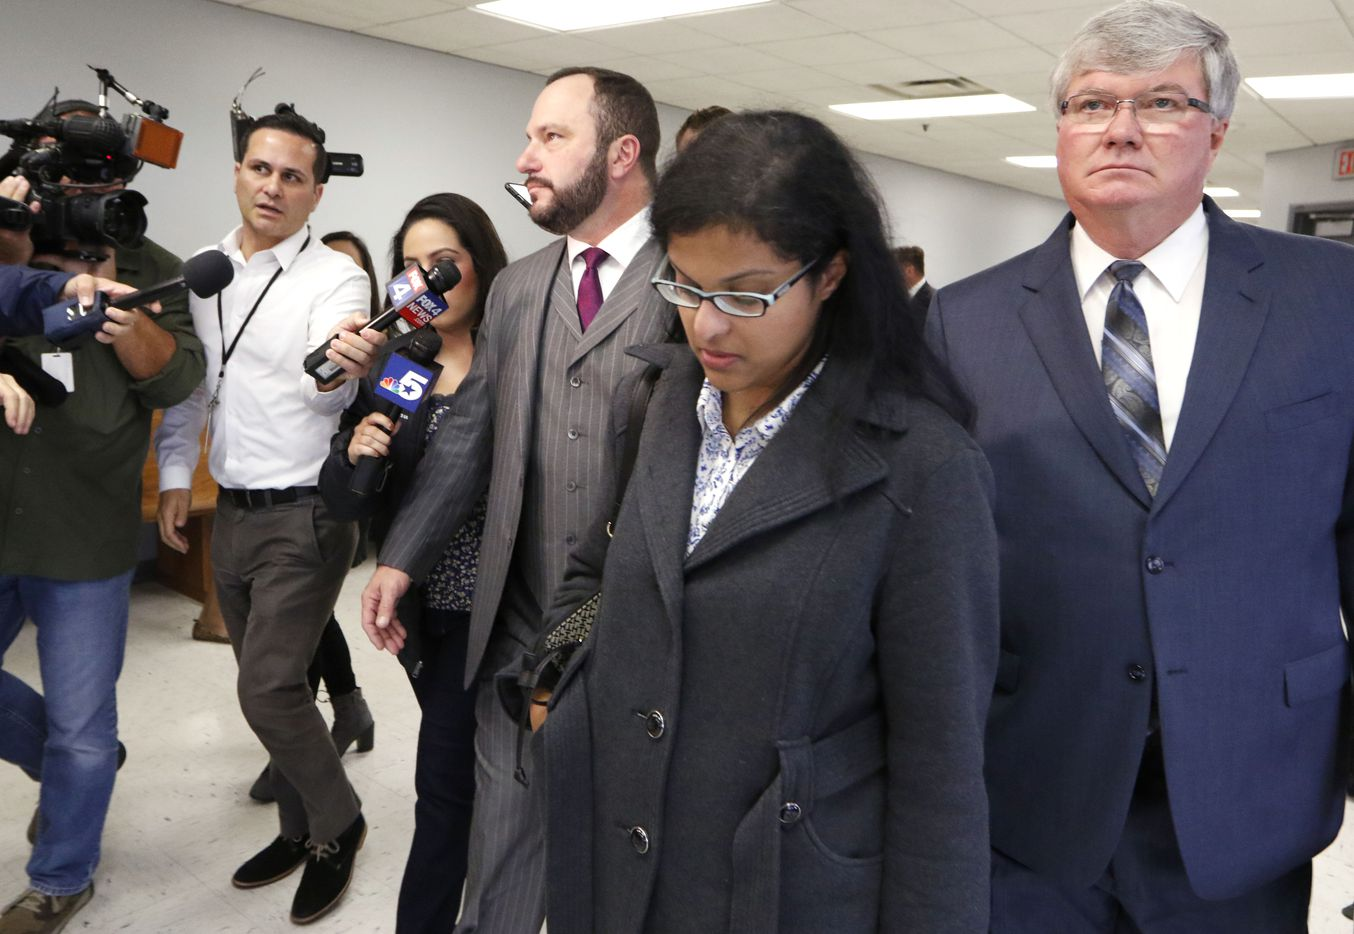 Sini Mathews, foreground, mother of Sherin Mathews, leaves Judge Cheryl Lee Shannon's courtroom where she learned that her biological child, a 4-year-old girl, will remain in foster care for another three weeks while Wesley Mathews looks for a civil attorney. The custody hearing was held at the Henry Wade Juvenile Justice Building on Monday, November 13, 2017. Wesley and Sini Mathews first appeared in court on Oct. 23 to try to regain custody of the biological daughter who was taken into Child Protective Services custody after Sherin was reported missing Oct. 7, 2017. The Judge has scheduled a new hearing for November 29, 2017. (David Woo/The Dallas Morning News)